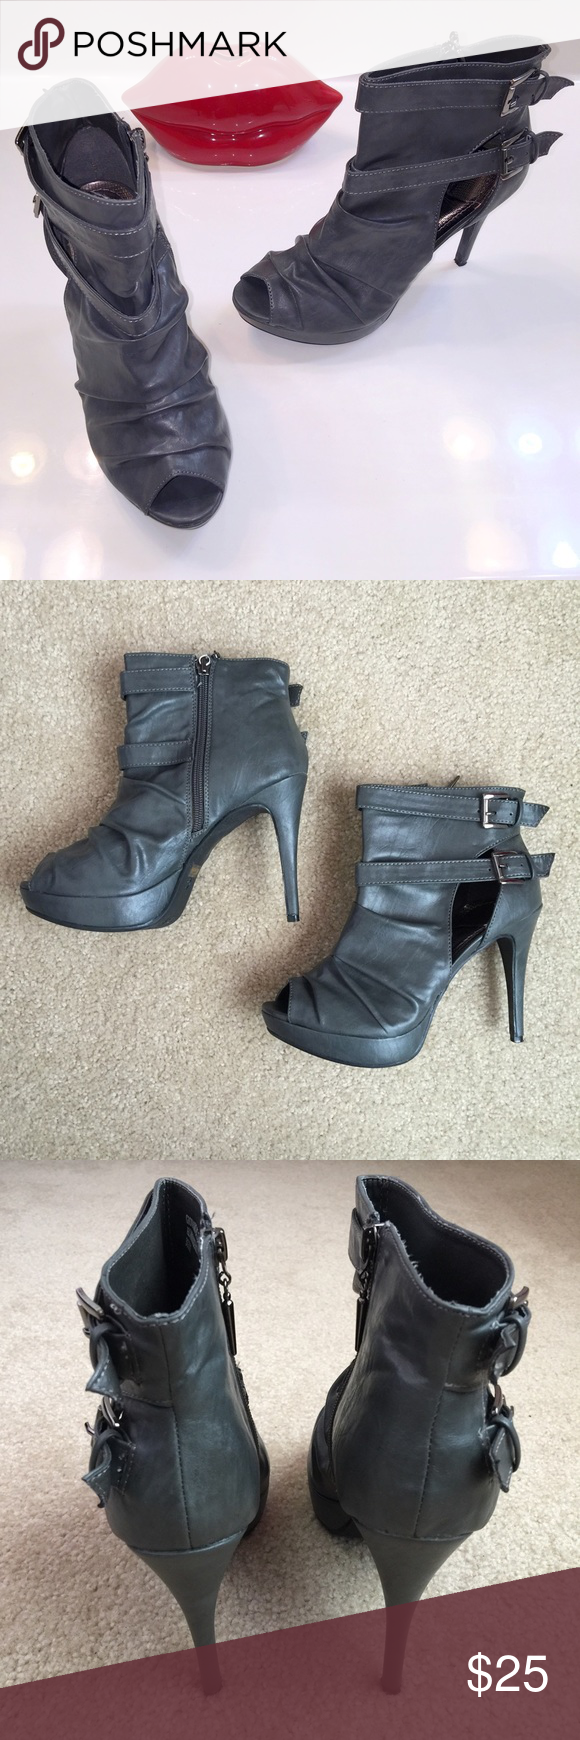 "Anne Michelle • Gray Faux Leather Heel Boots 👠Stylish gray faux leather heels with zipper, buckle straps and peeped toes! Shoes have a 1"" inch platform and 4-1/4"" inch heel! 💥Gently worn for a couple hours, almost new... in box!💥 Minor dark mark from storage on right shoe (see last photo). Otherwise, in excellent condition! Original box included. Anne Michelle Shoes Ankle Boots & Booties"